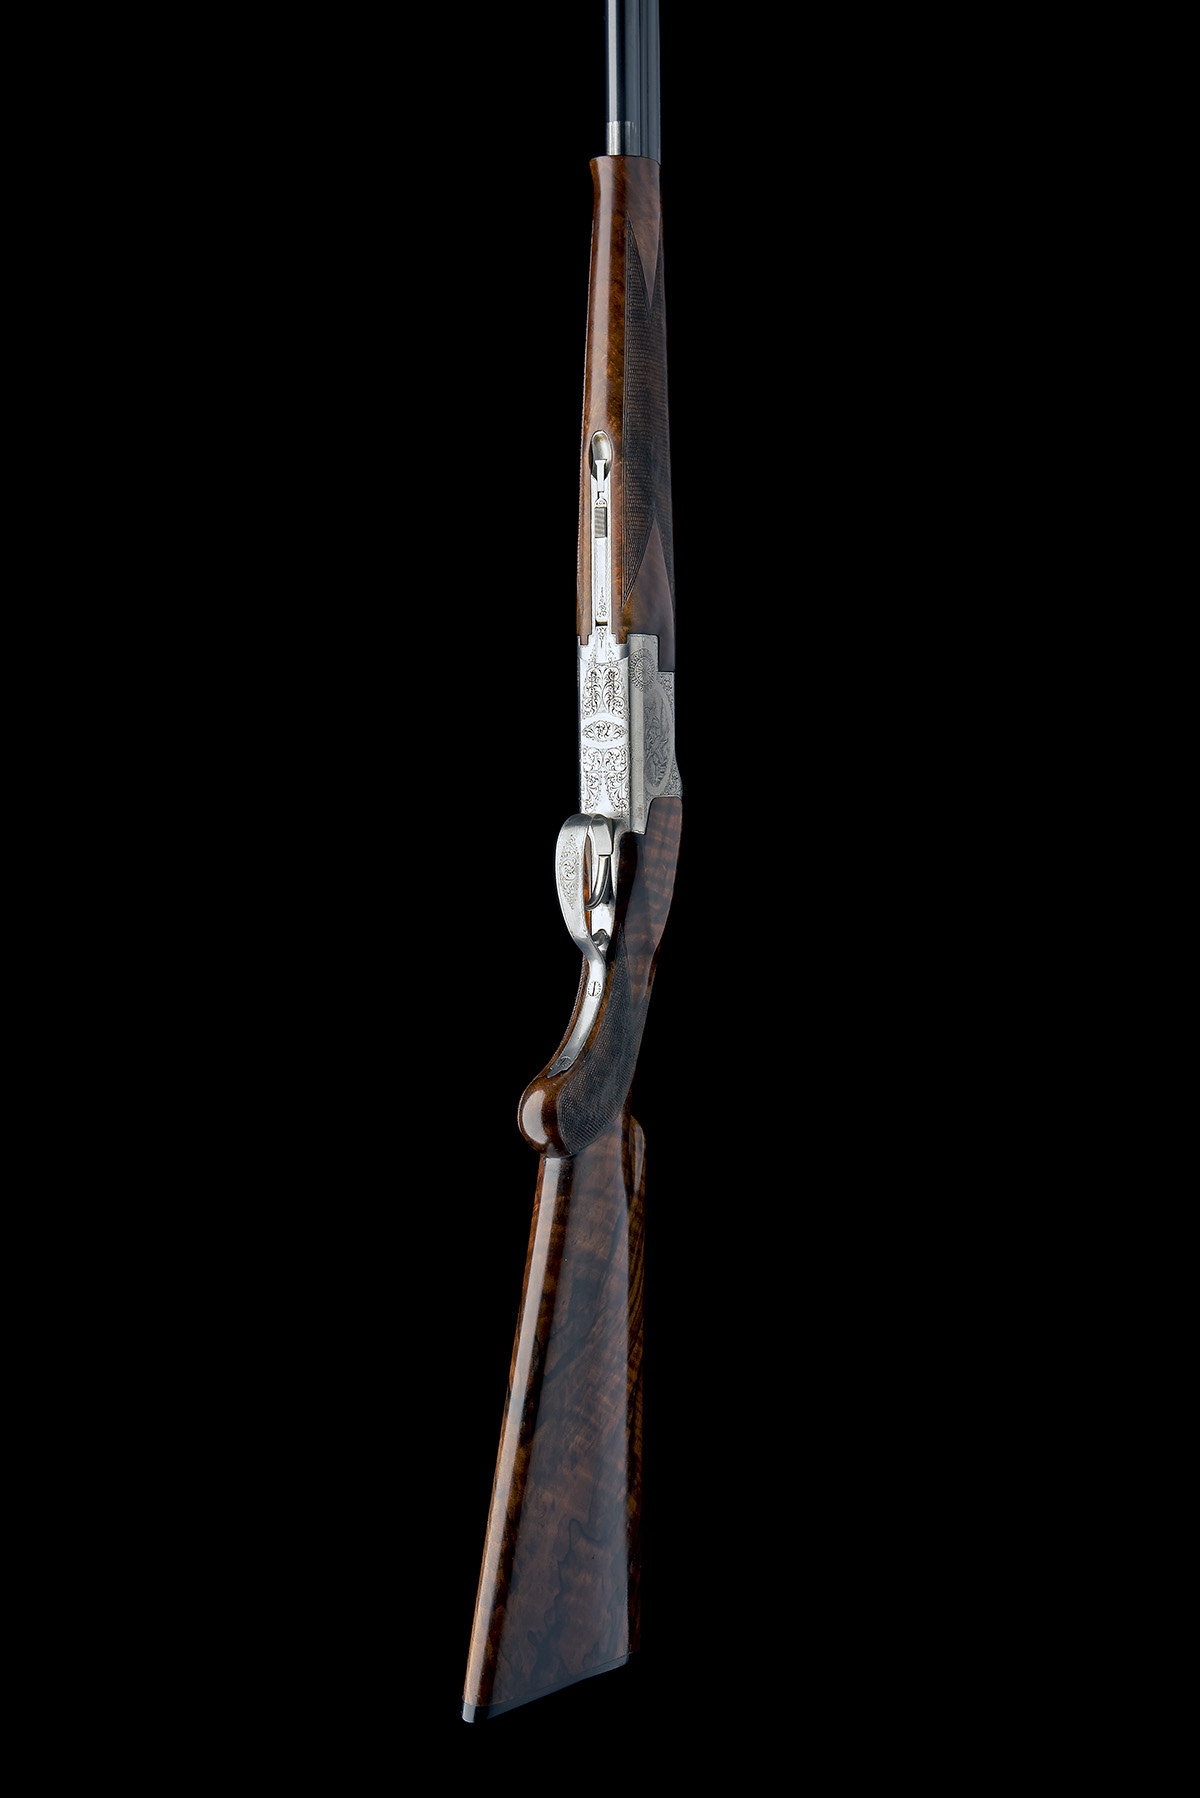 BROWNING ARMS COMPANY A PERFIDO-ENGRAVED 20-BORE 'MOD. B2G' SINGLE-TRIGGER OVER AND UNDER EJECTOR, - Image 9 of 11